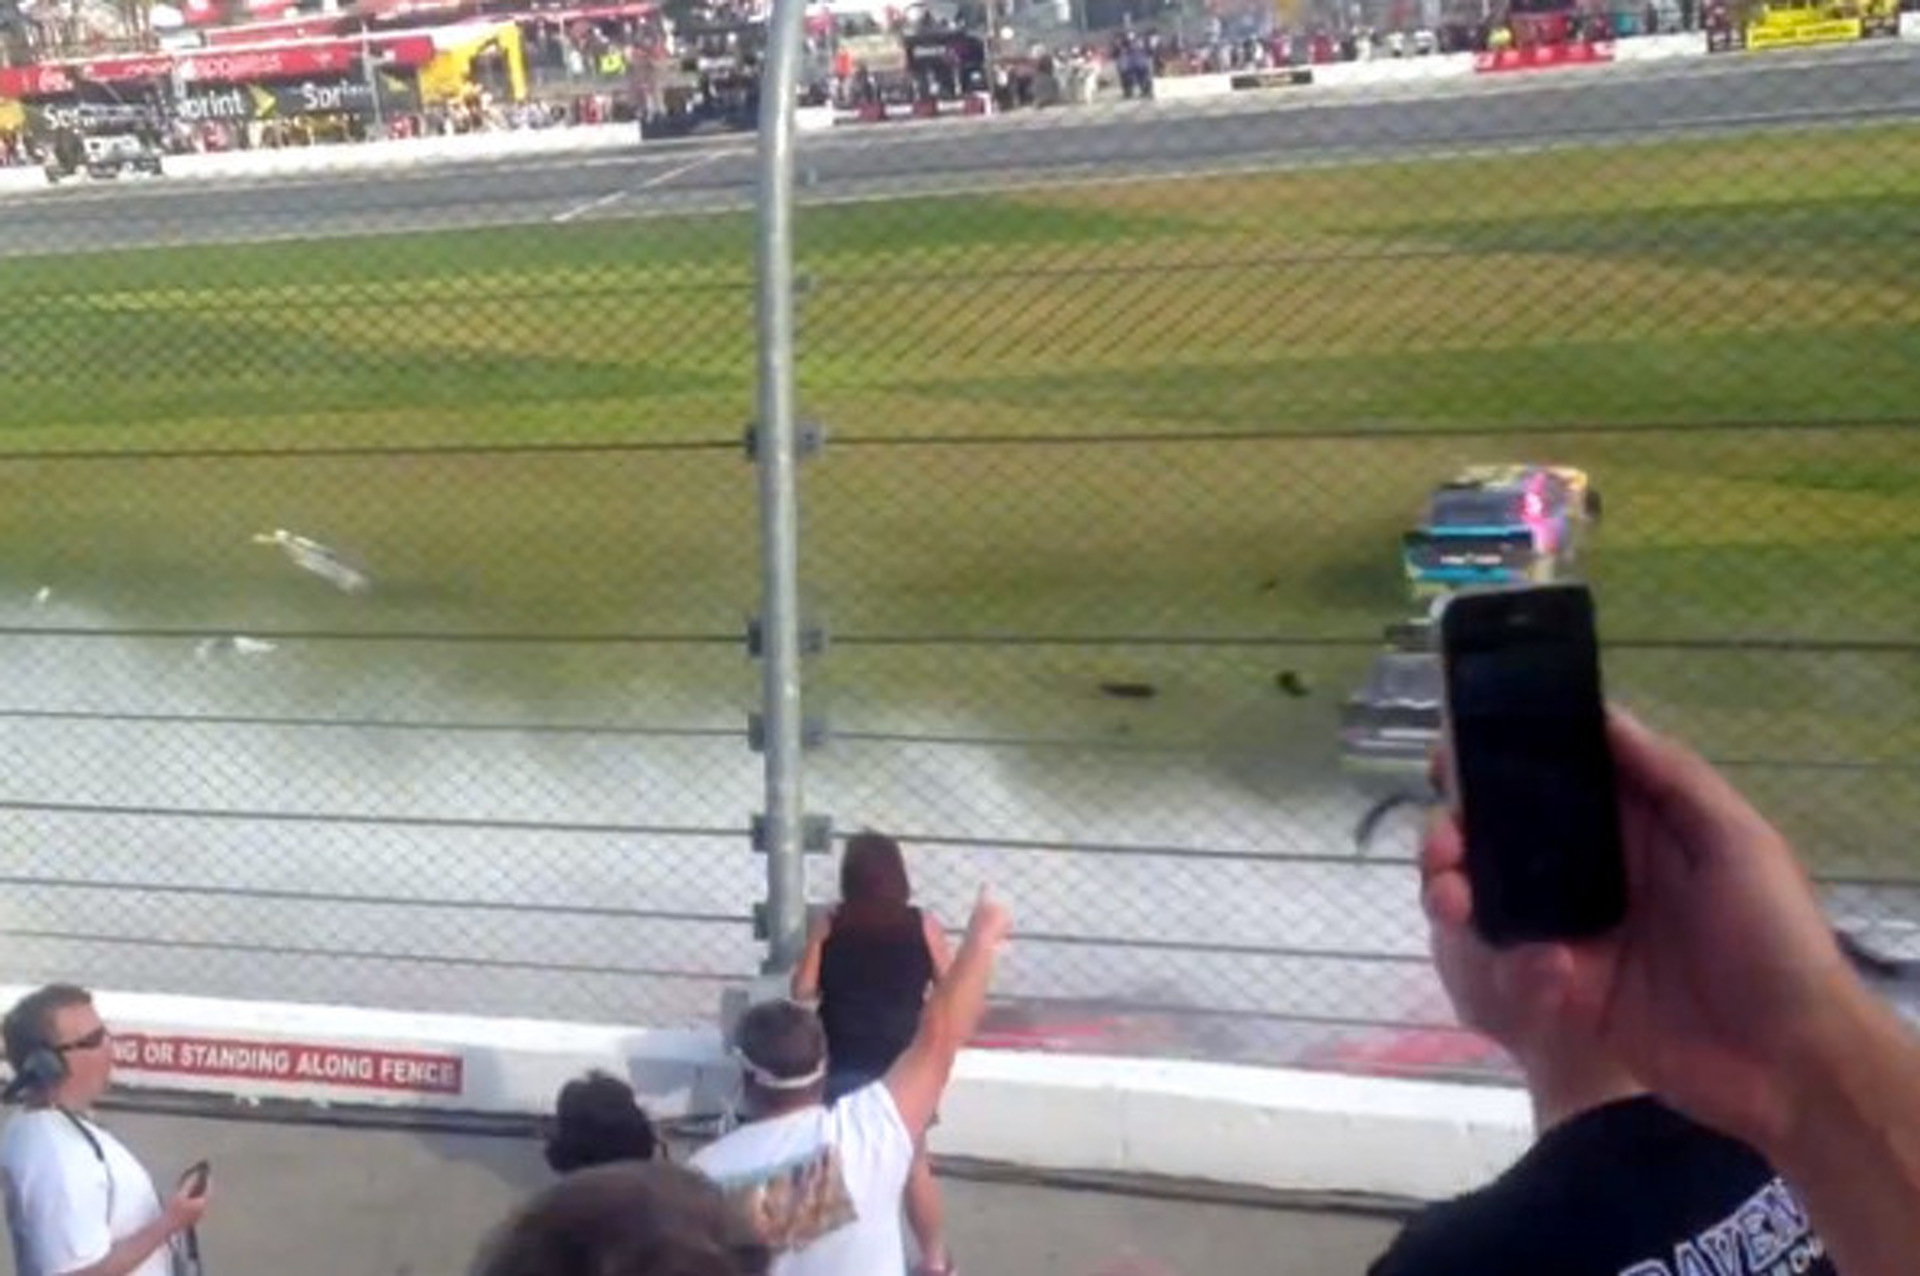 28 Injured in NASCAR Crash